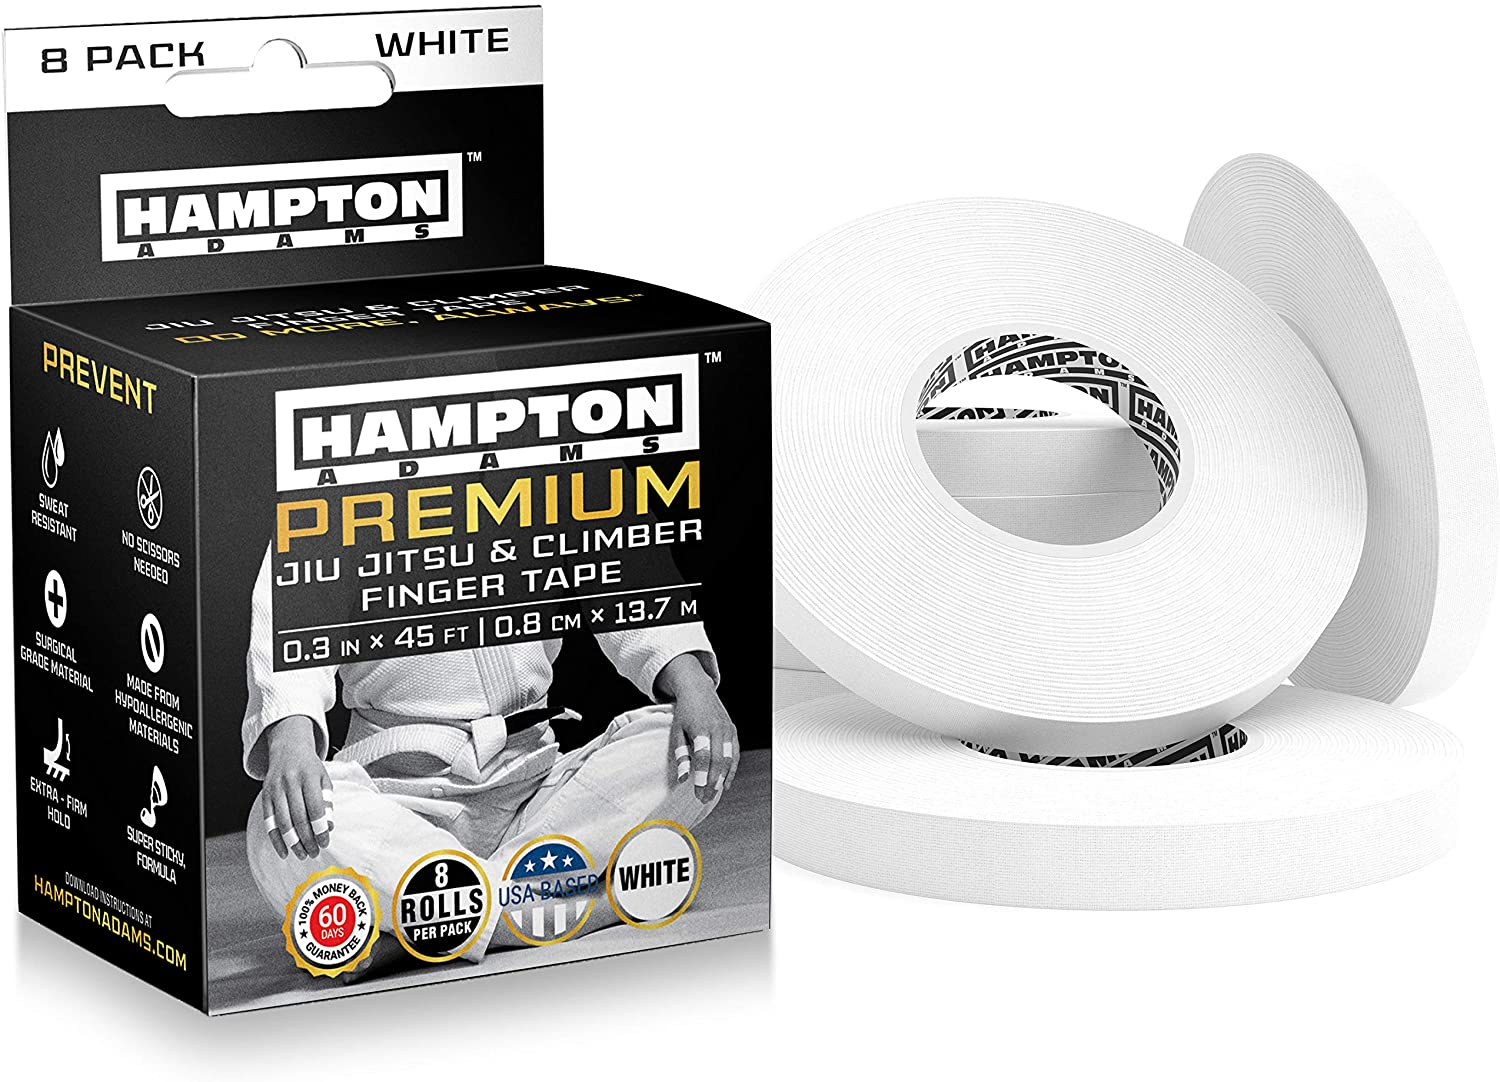 "(8 Pack) White Finger Tape - Athletic Tape | 0.3"" x 45 Feet - for Rock Climbing, BJJ Jiu Jitsu, Grappling, MMA, Crossfit and Martial Arts by Hampton Adams"